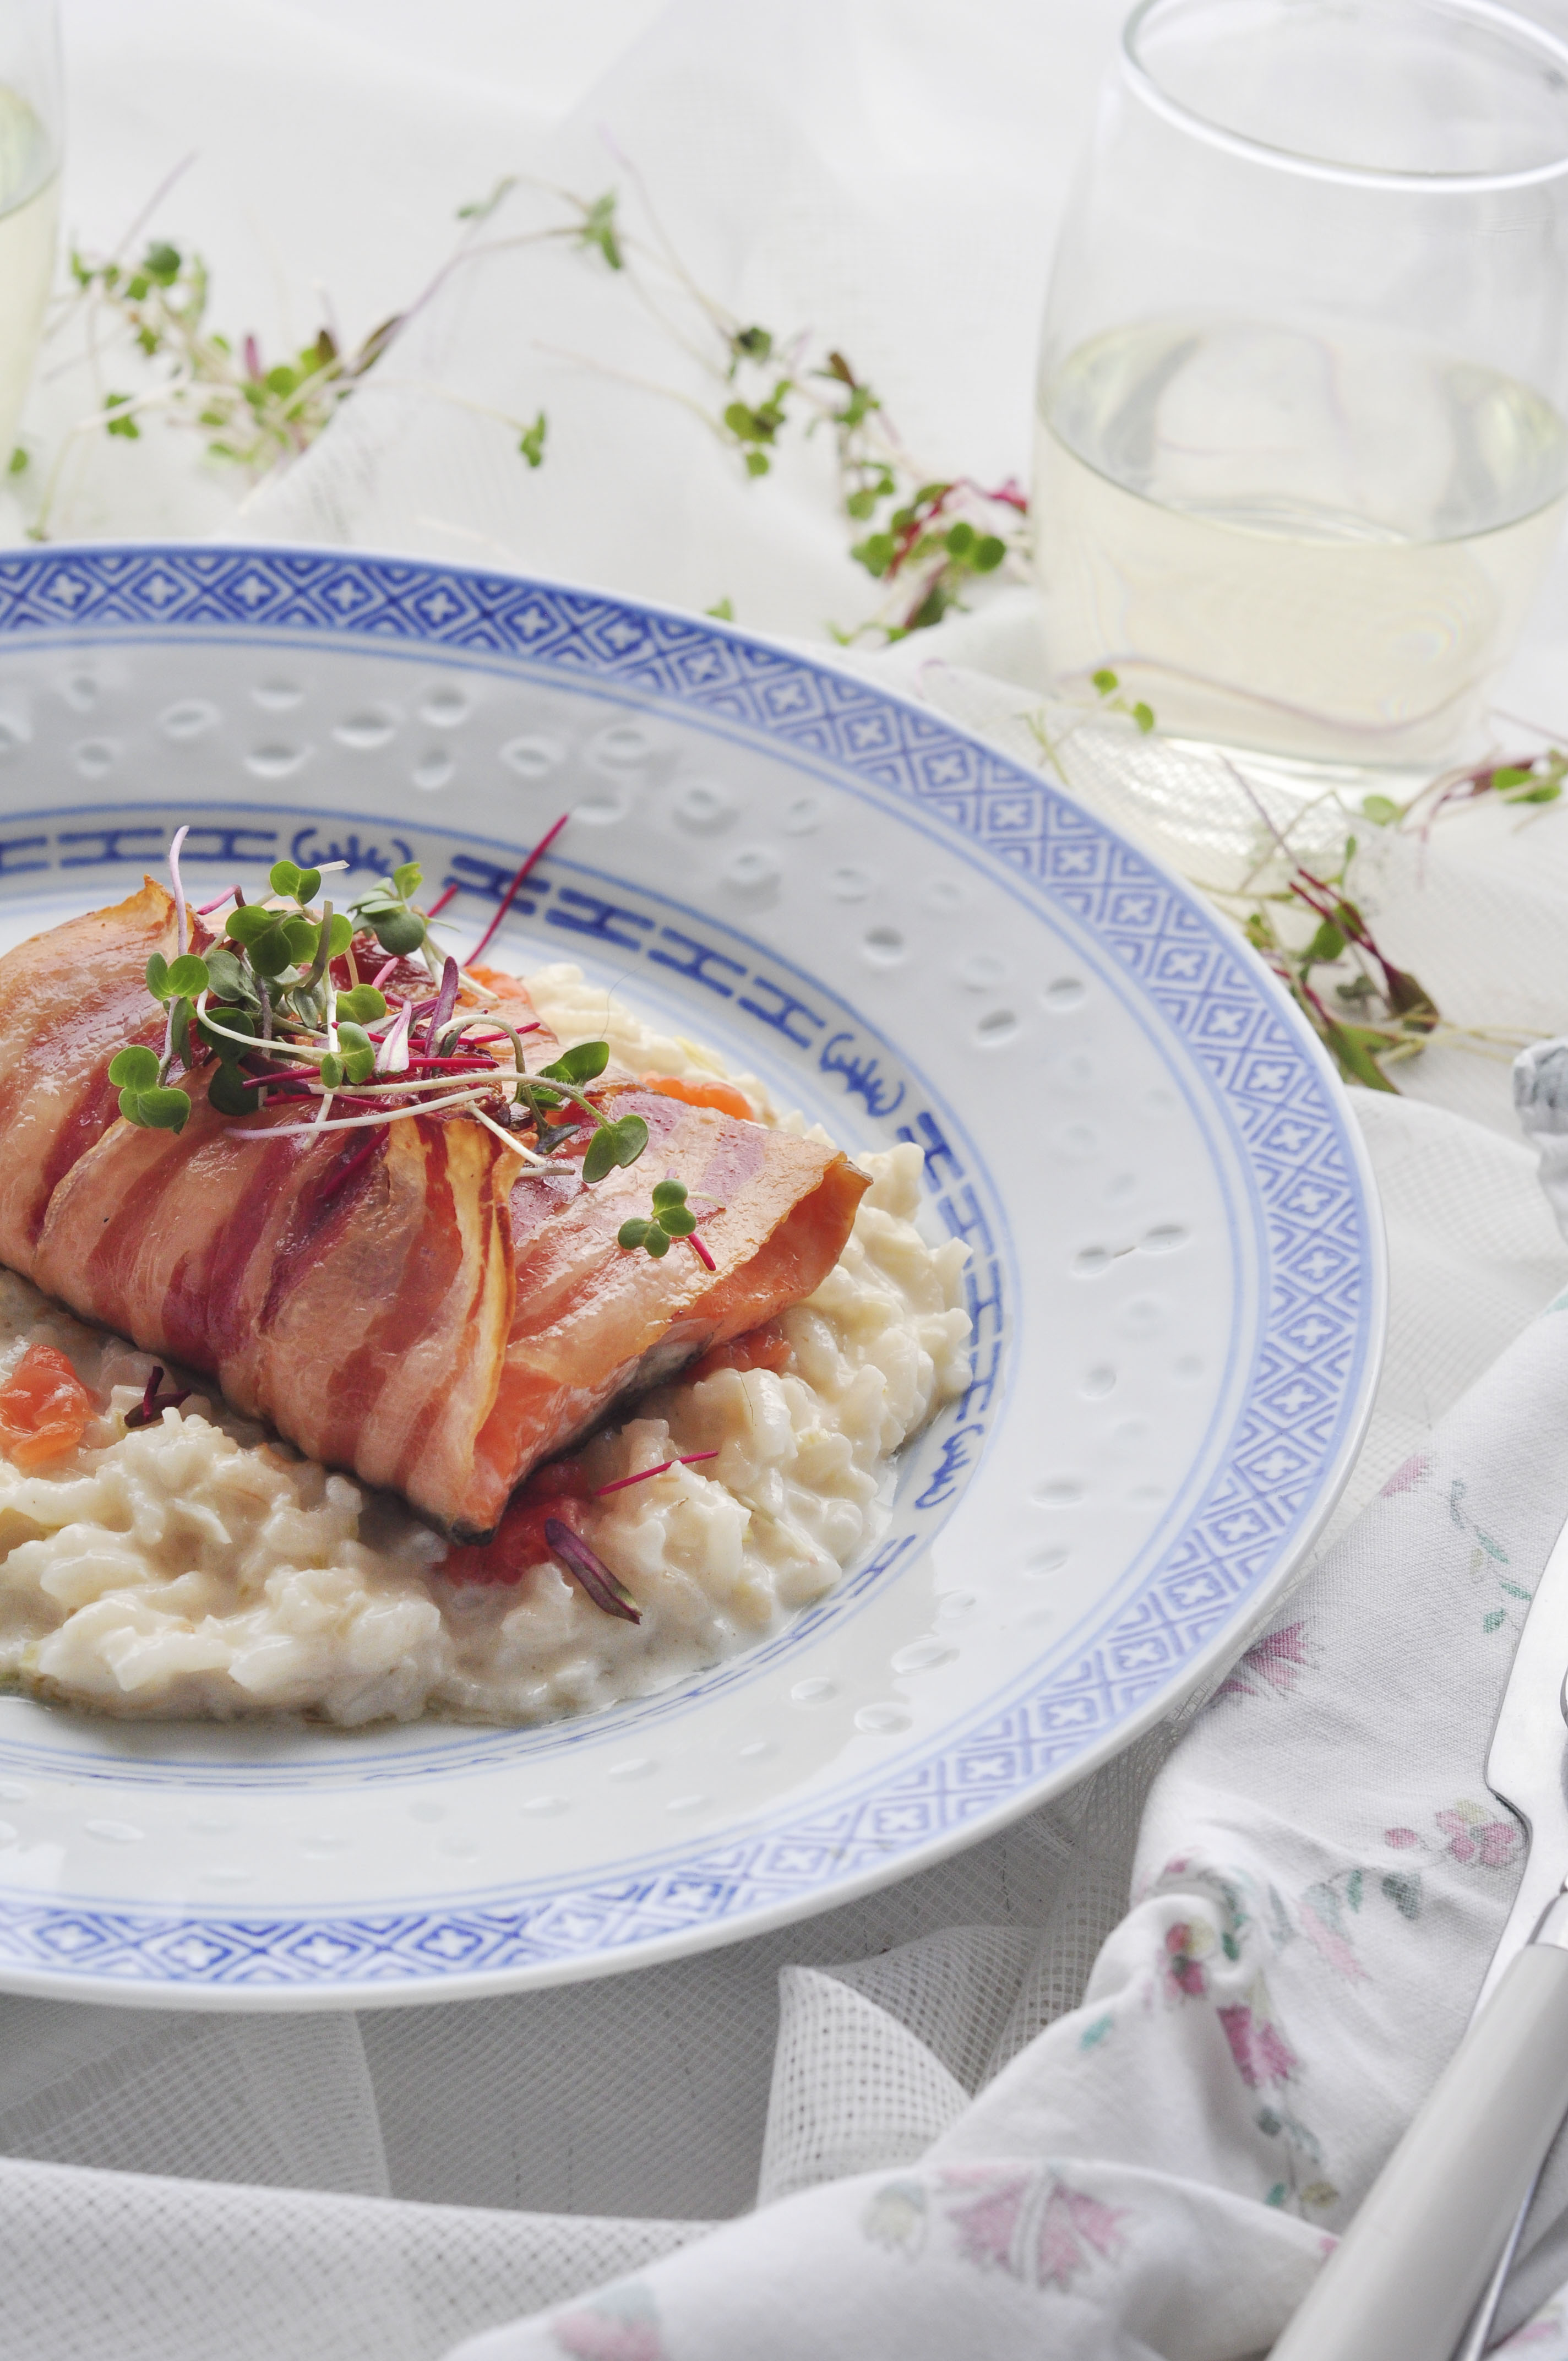 Salmon risotto with Salmon wrapped in Pancetta